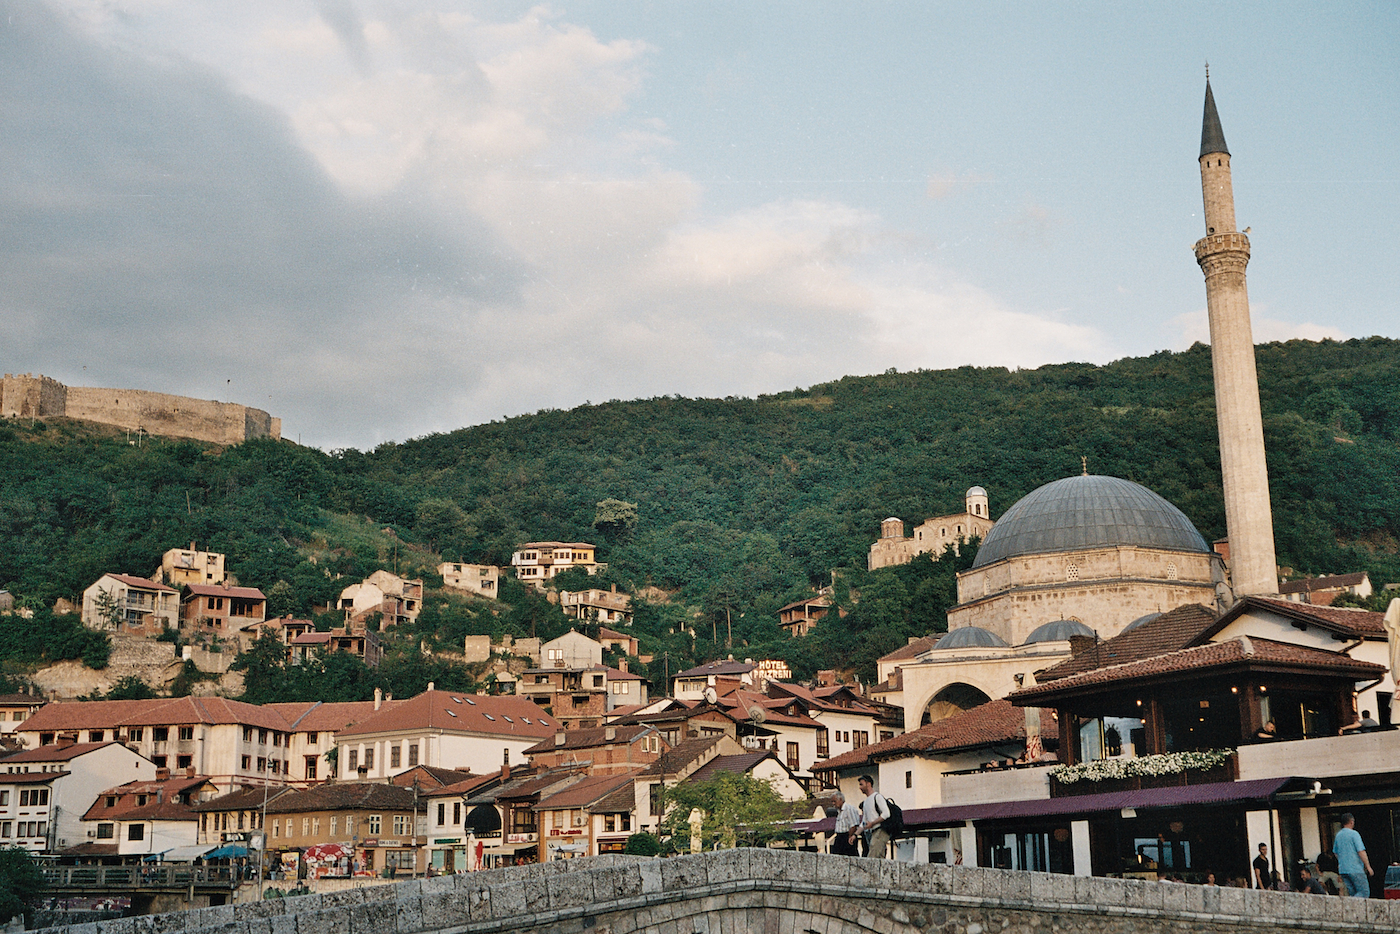 Matija Biljeskovic - Return to Prizren